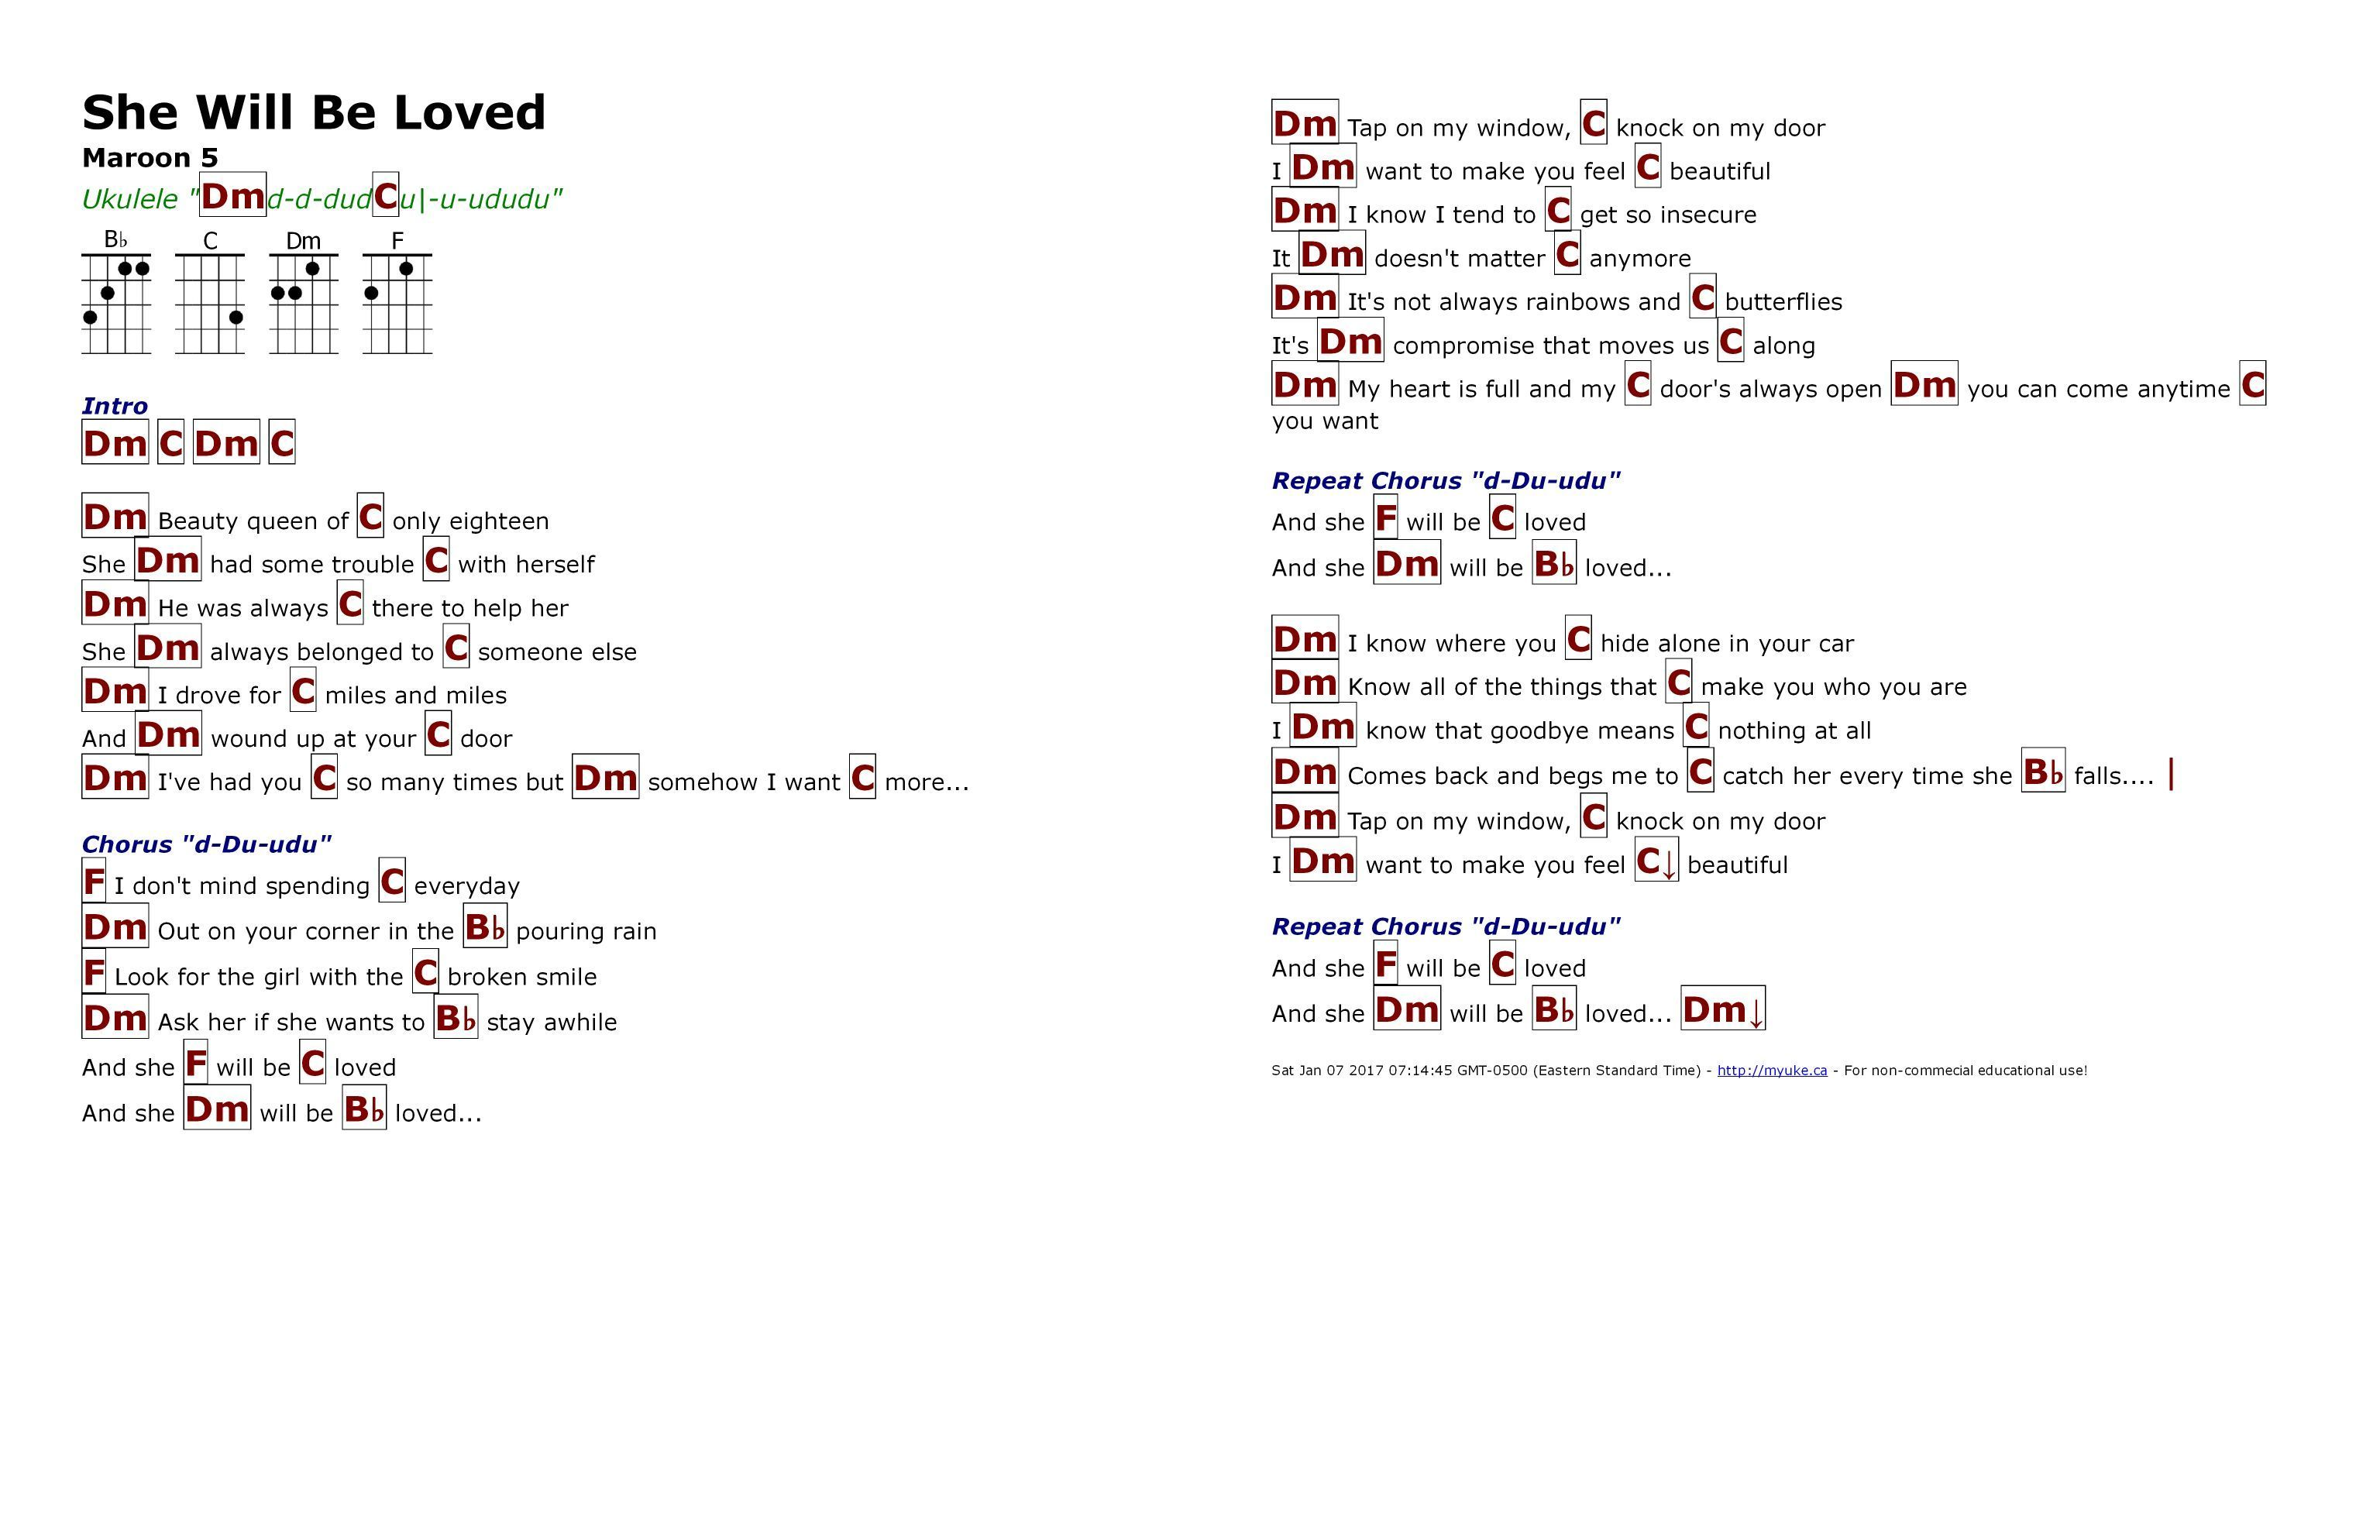 Maroon She Lyrics Loved Will Chords And Be 5